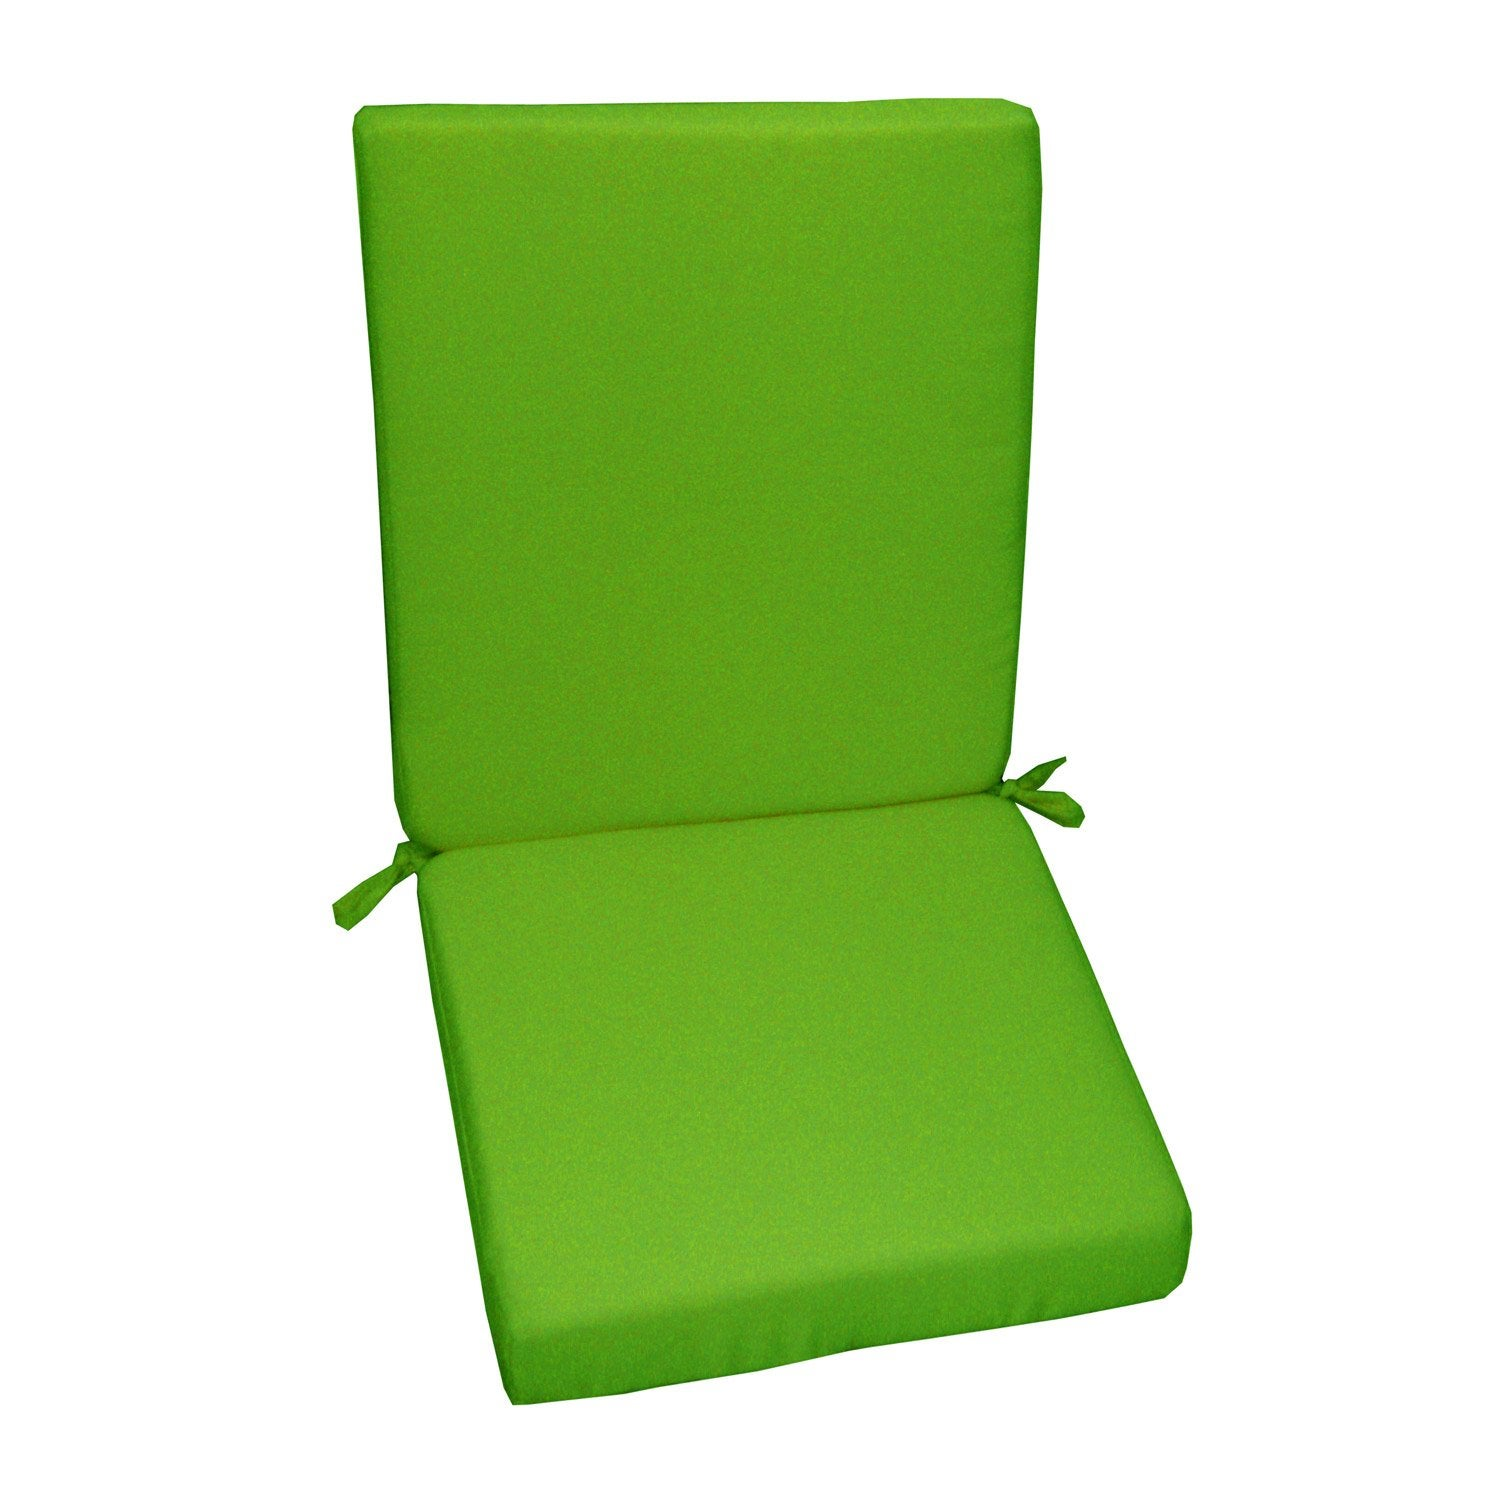 coussin d 39 assise de chaise ou de fauteuil vert lola leroy merlin. Black Bedroom Furniture Sets. Home Design Ideas